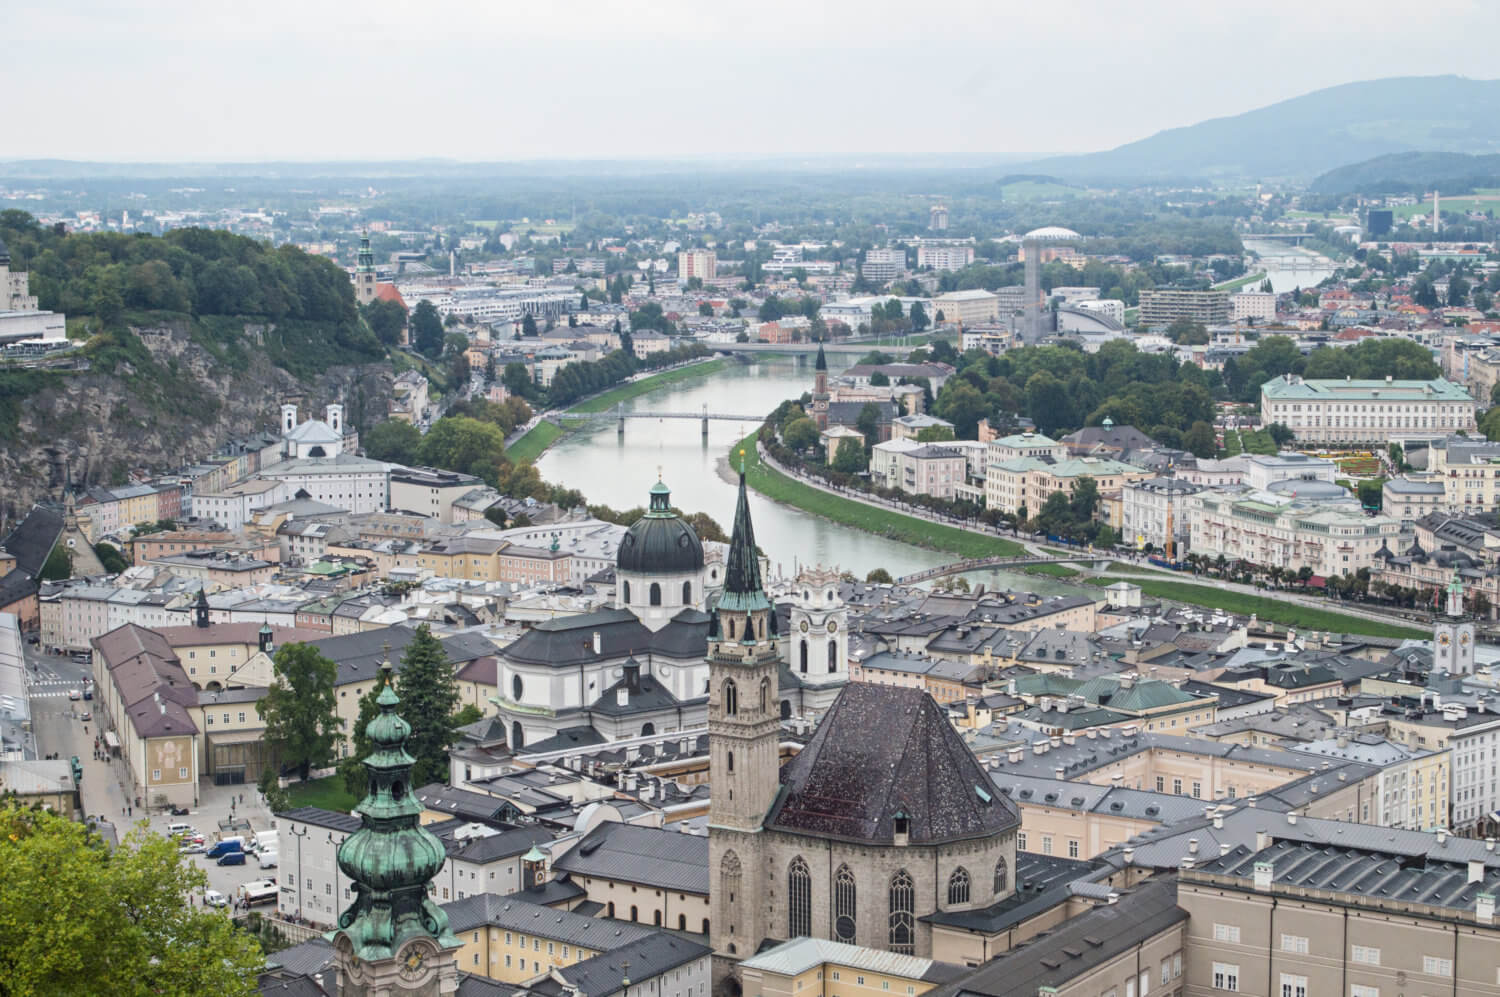 The stunning view from Hohensalzburg Fortress